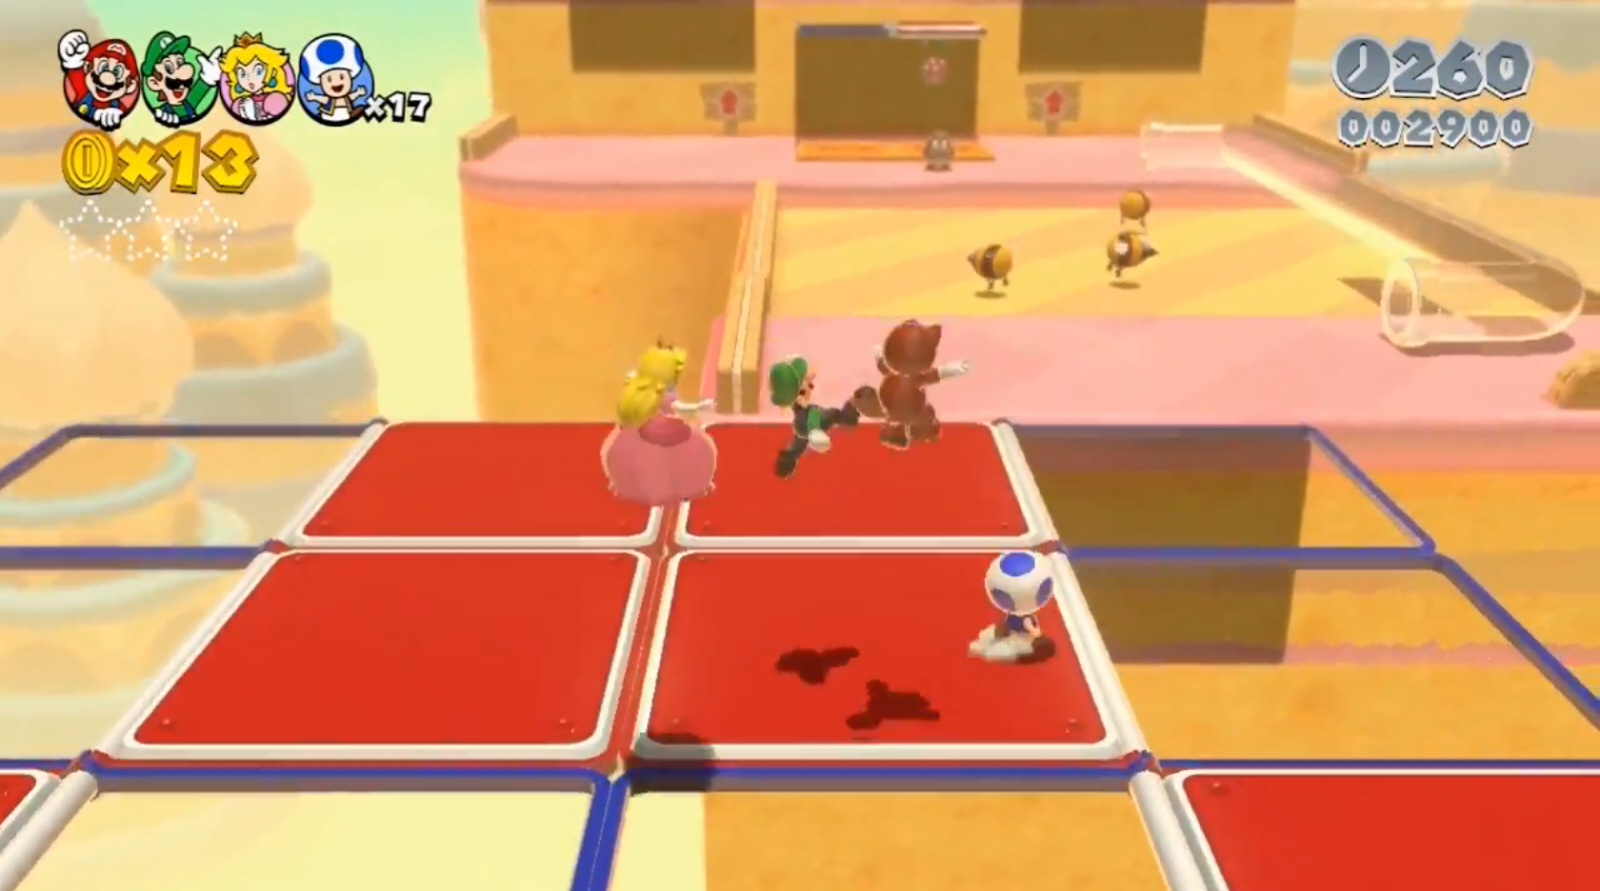 4 player games for wii u